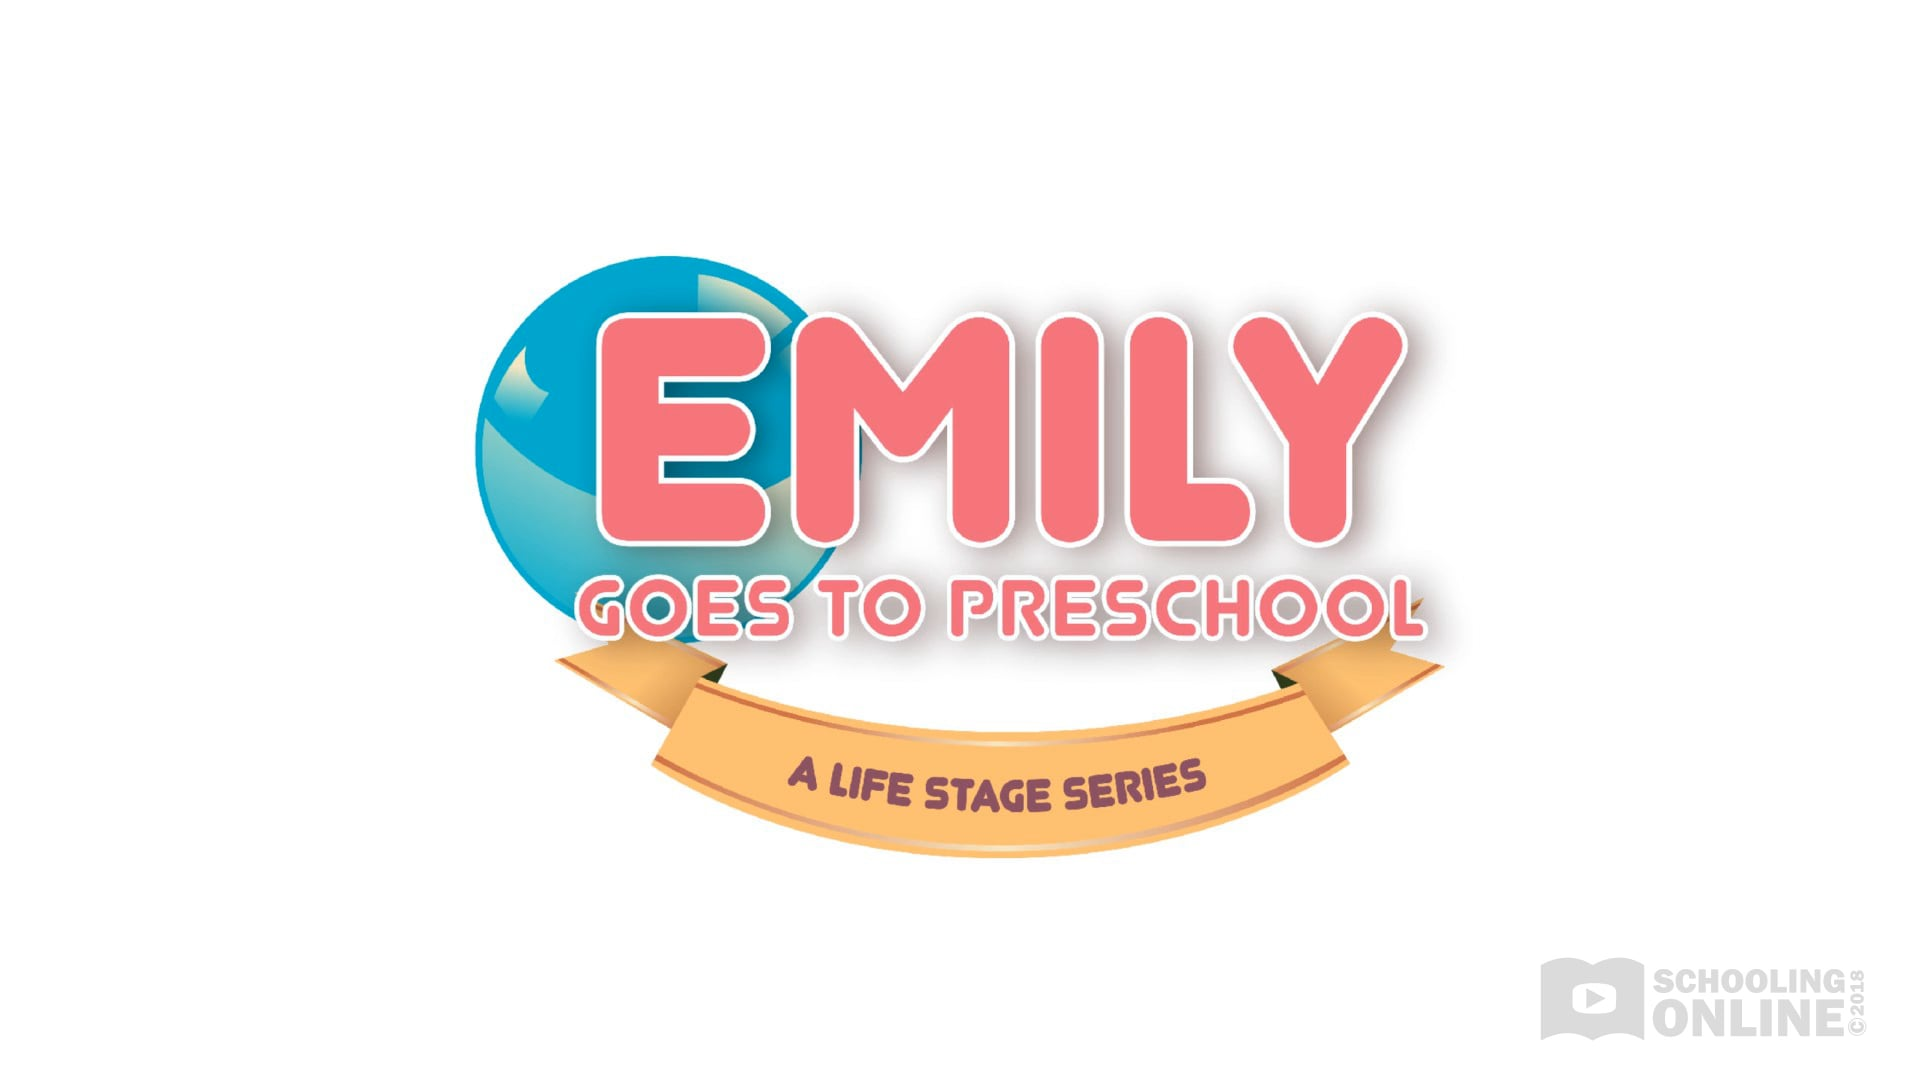 Emily Goes to Preschool - The Life Stage Series